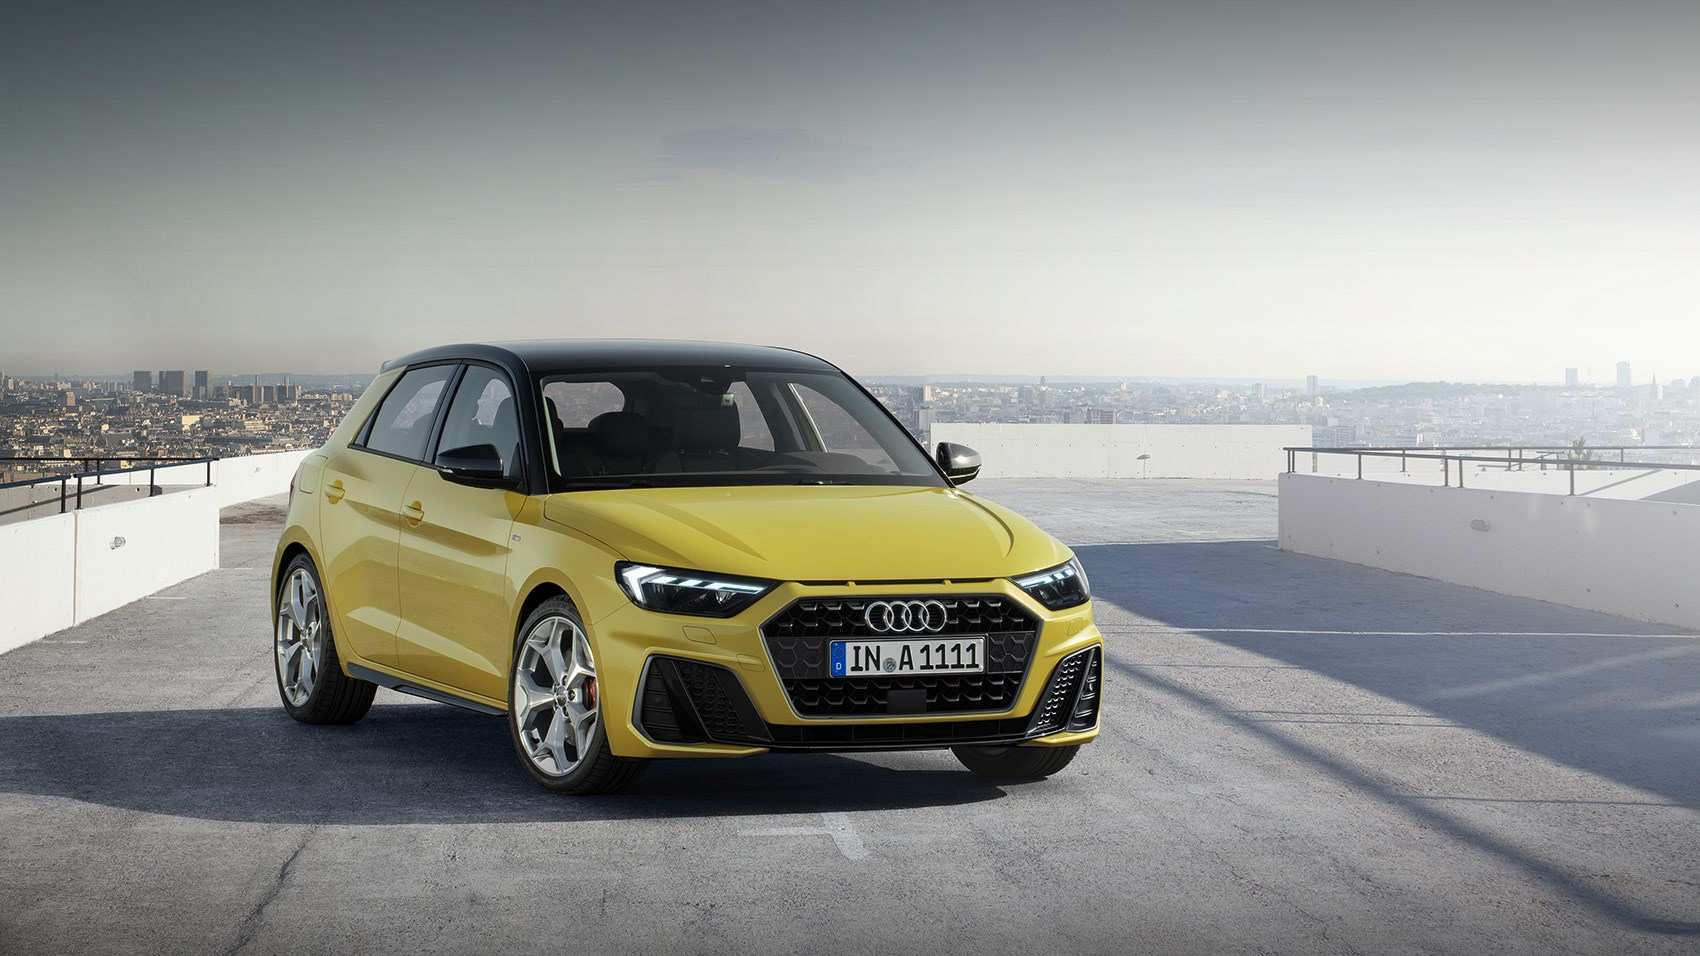 38 Gallery of S1 Audi 2019 New Review Redesign for S1 Audi 2019 New Review